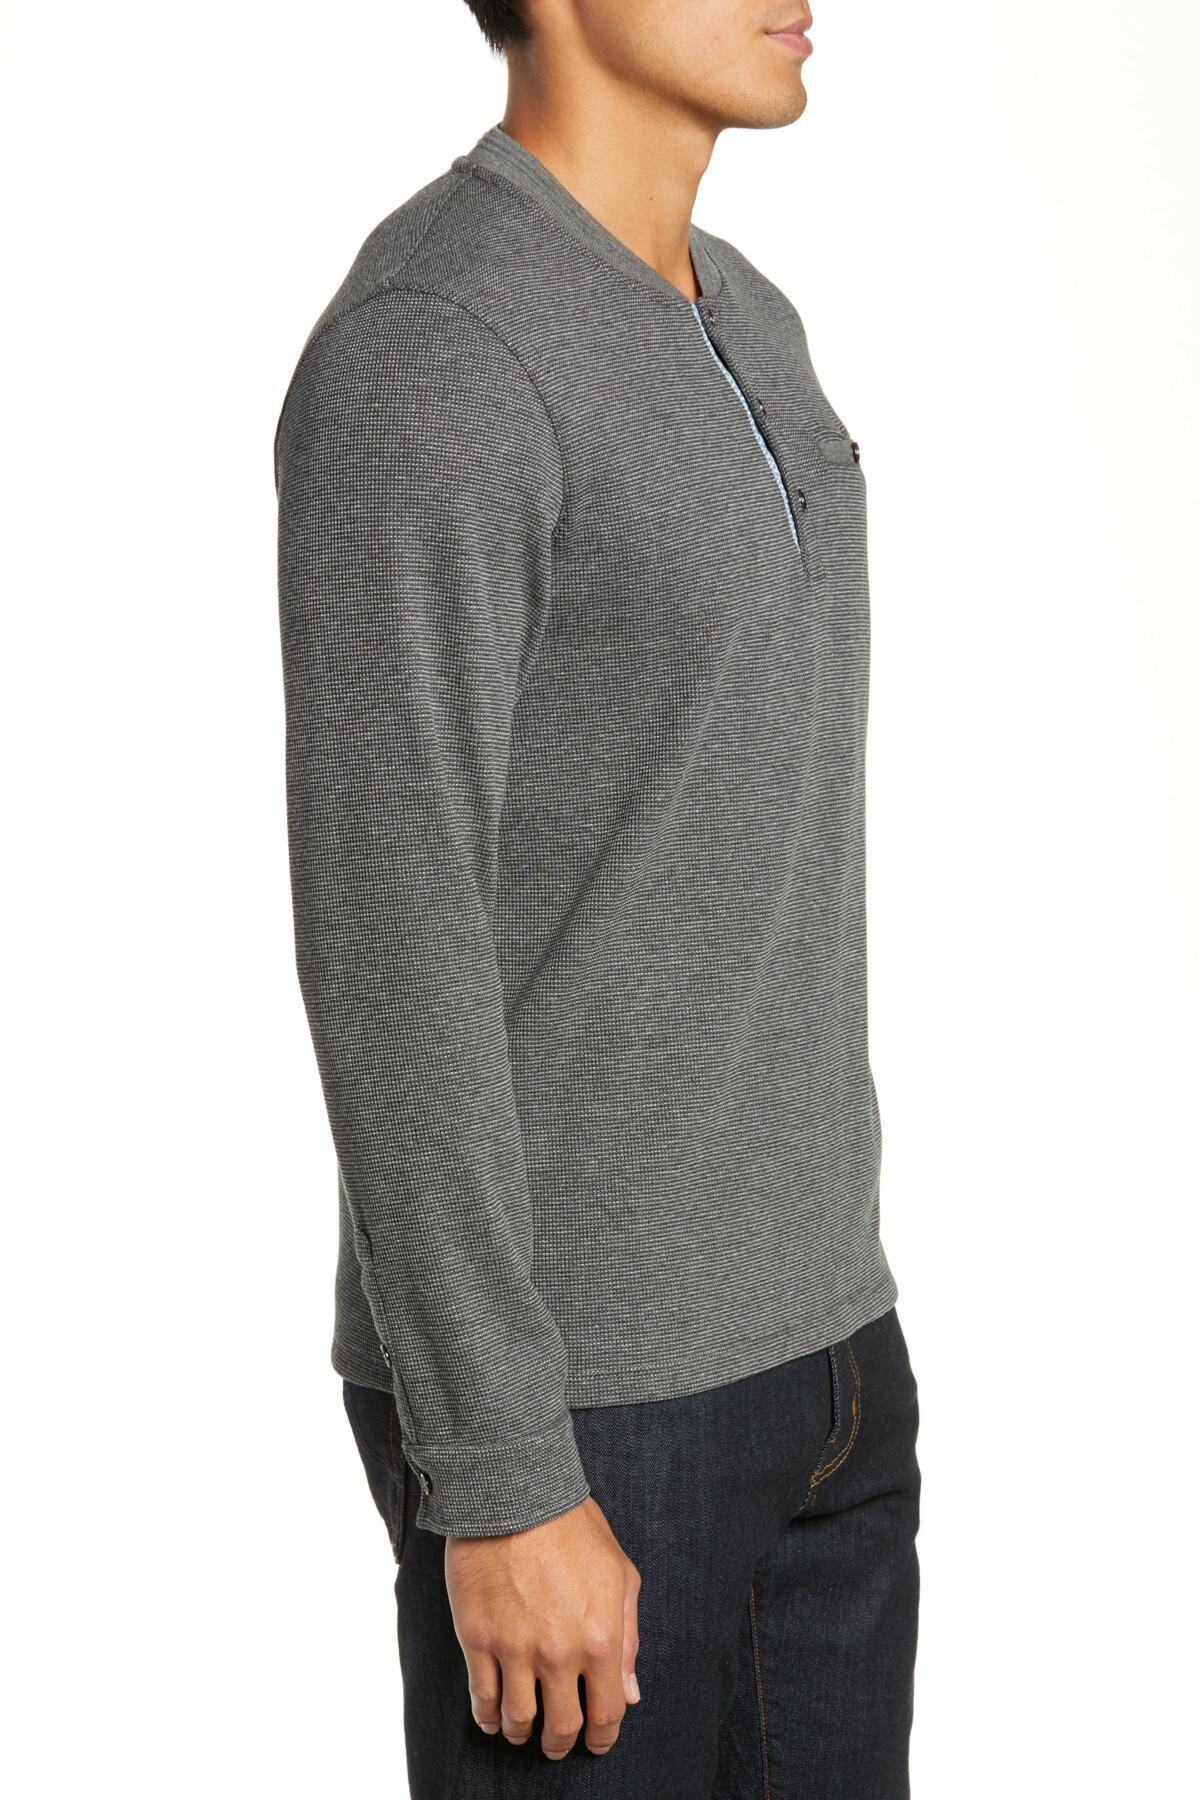 61f9f0b73 Lyst - Ted Baker Slim Fit Mojave Thermal Pocket Henley in Gray for ...